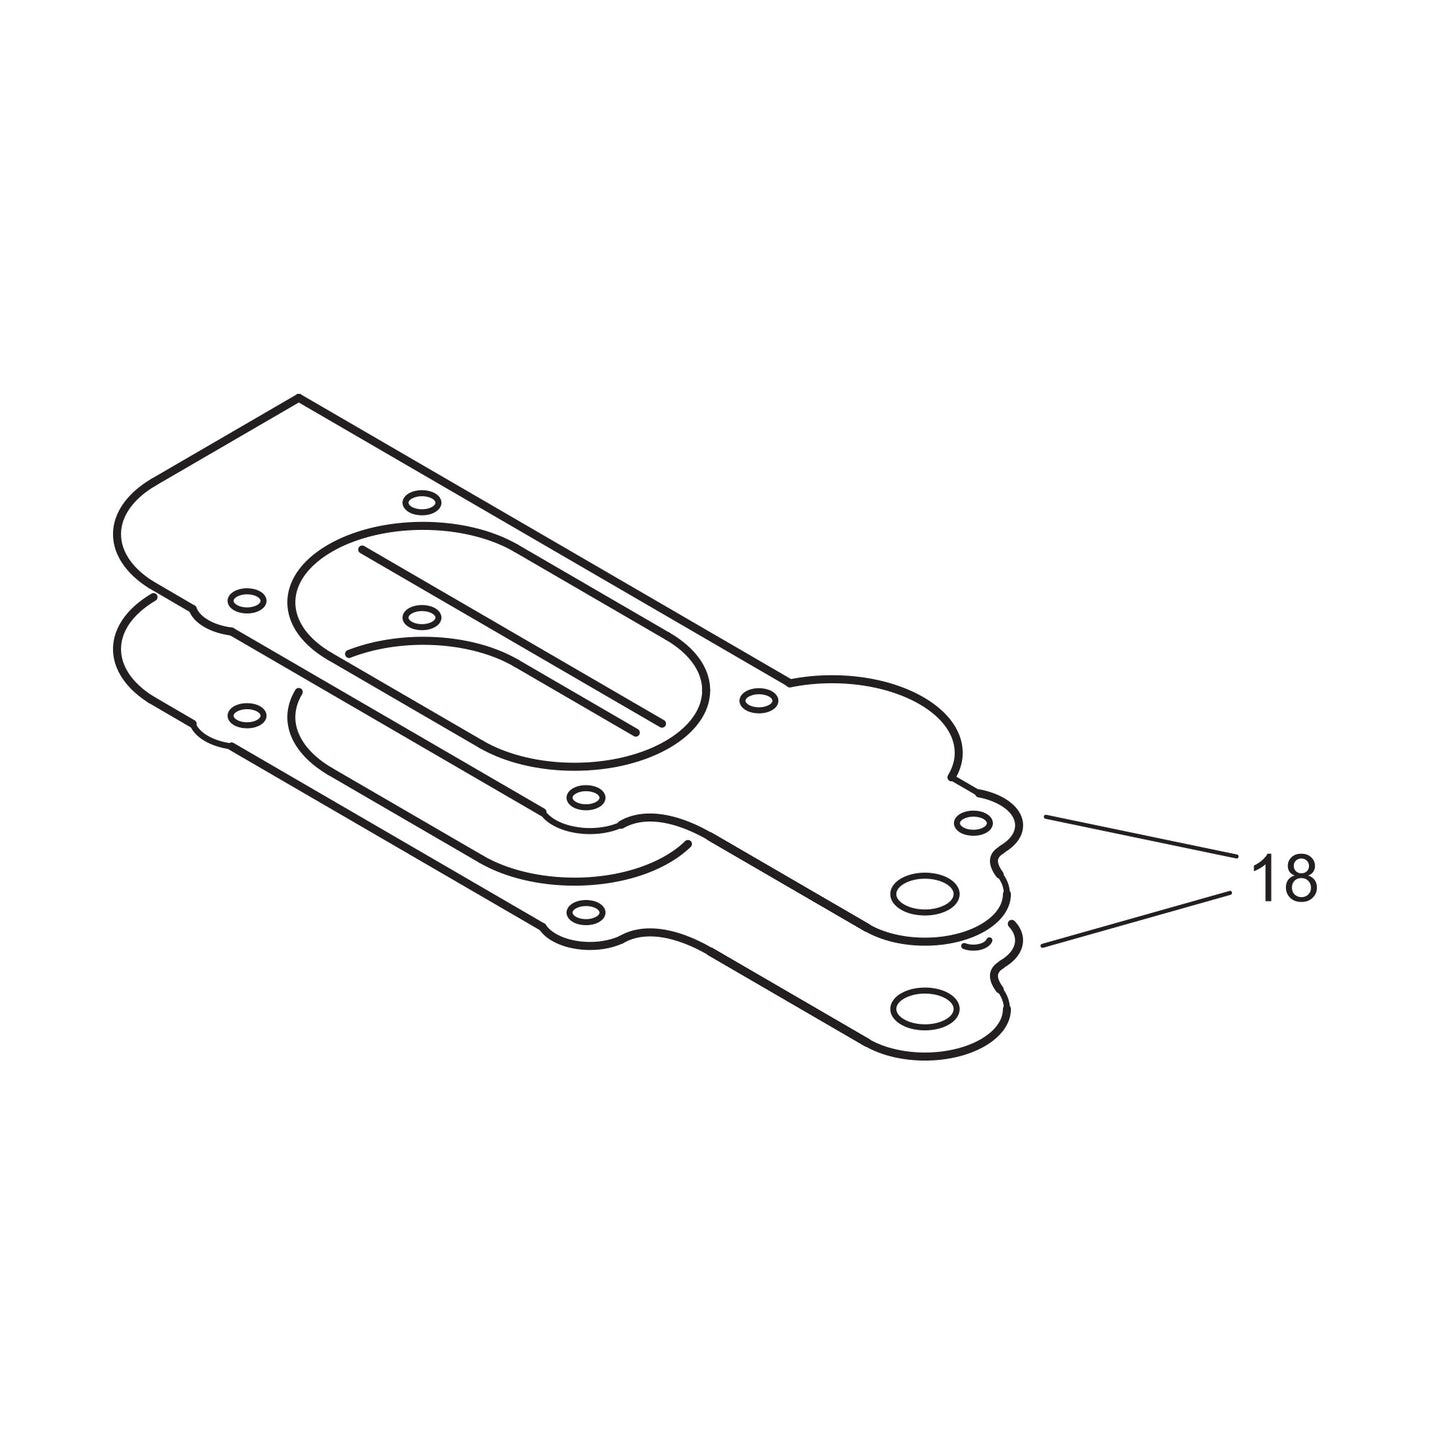 Lower Cover Gasket - .004